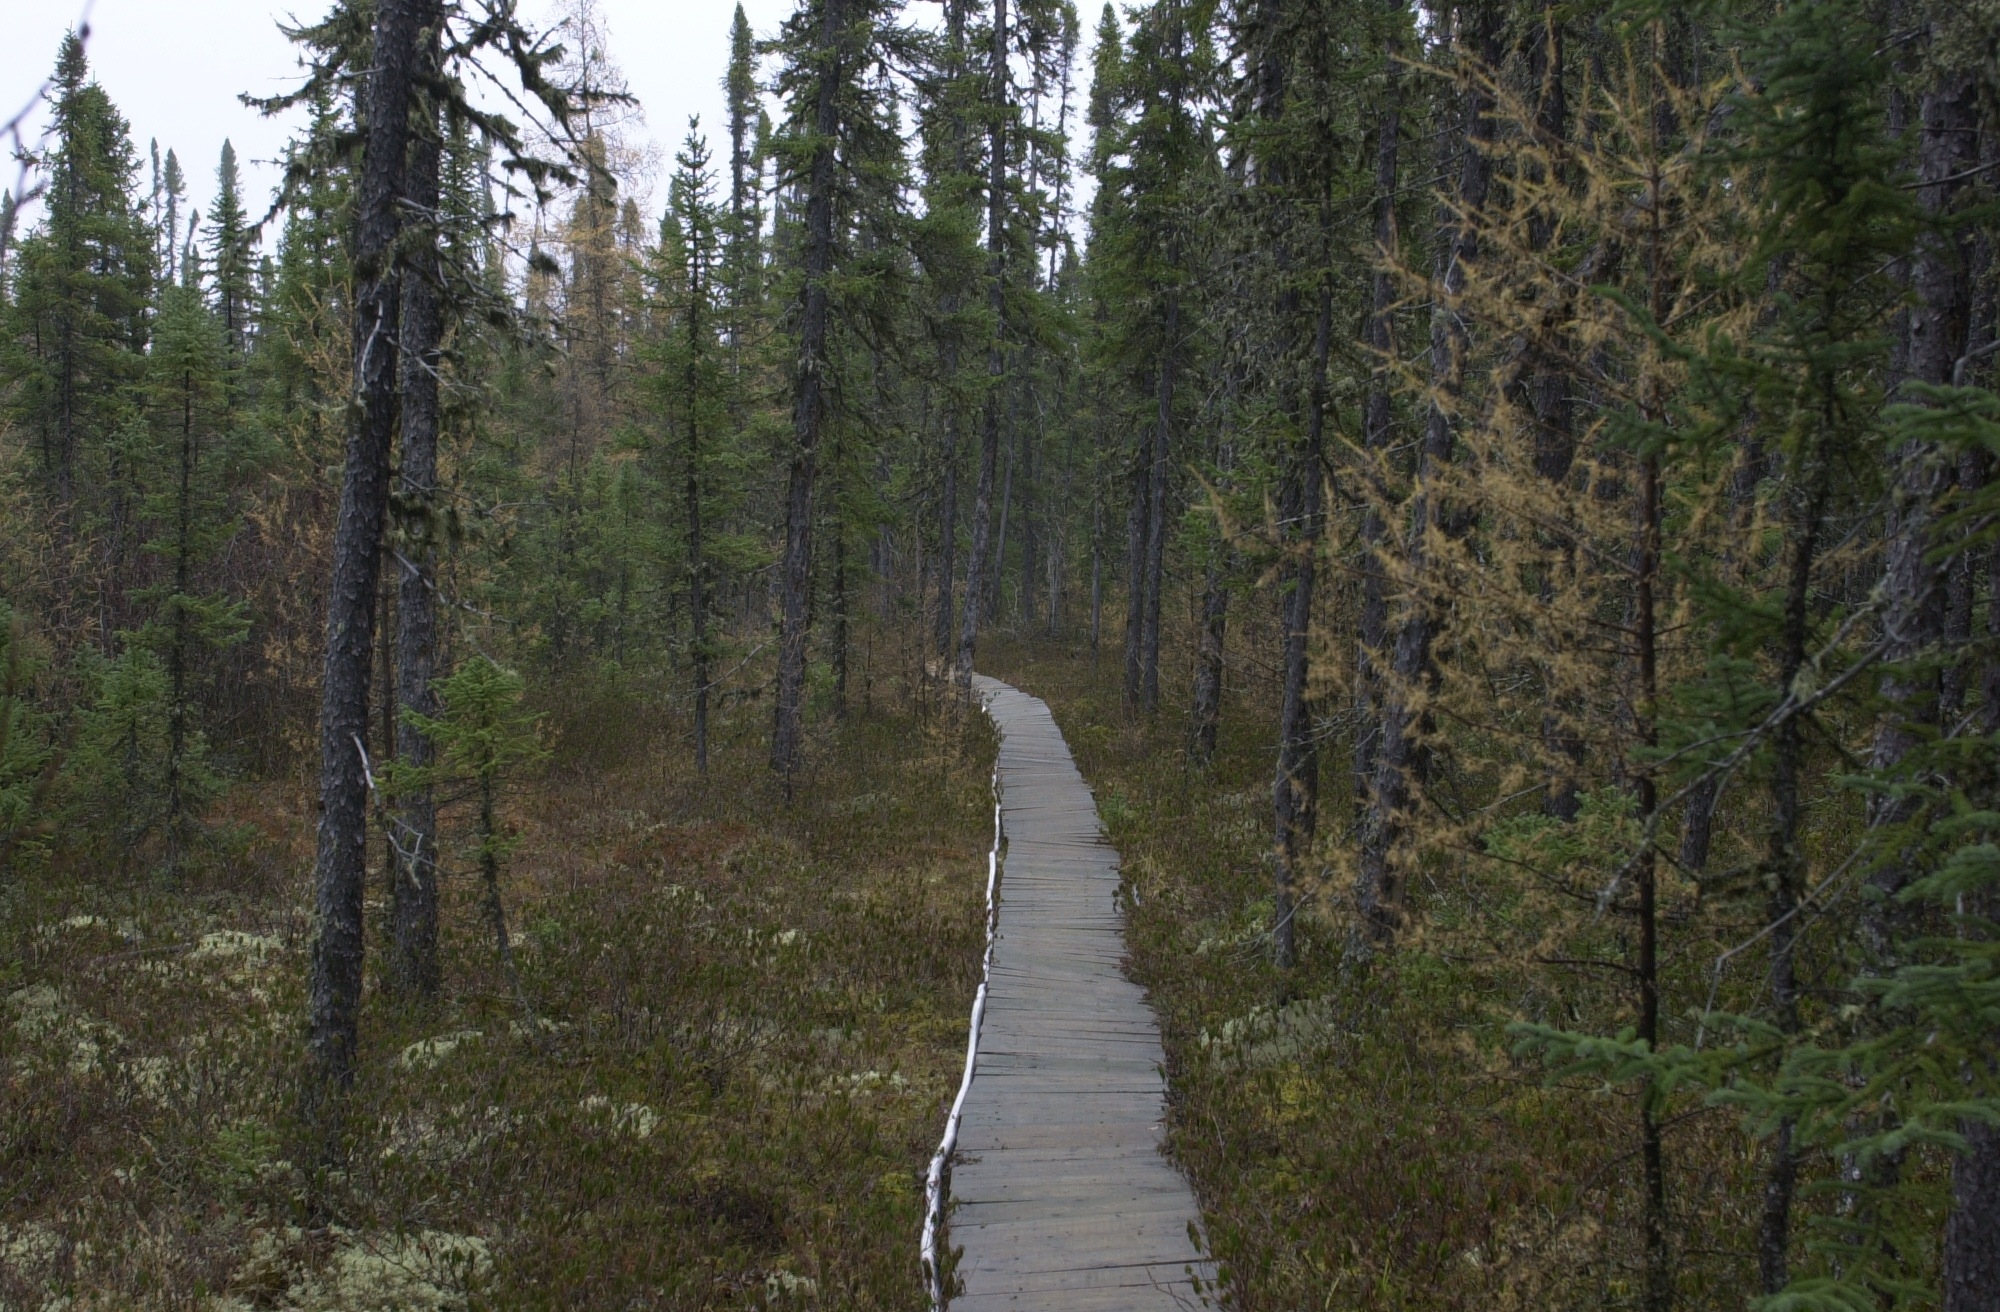 Death Of A Spruce Tree Study Of Black Spruce Forest Means